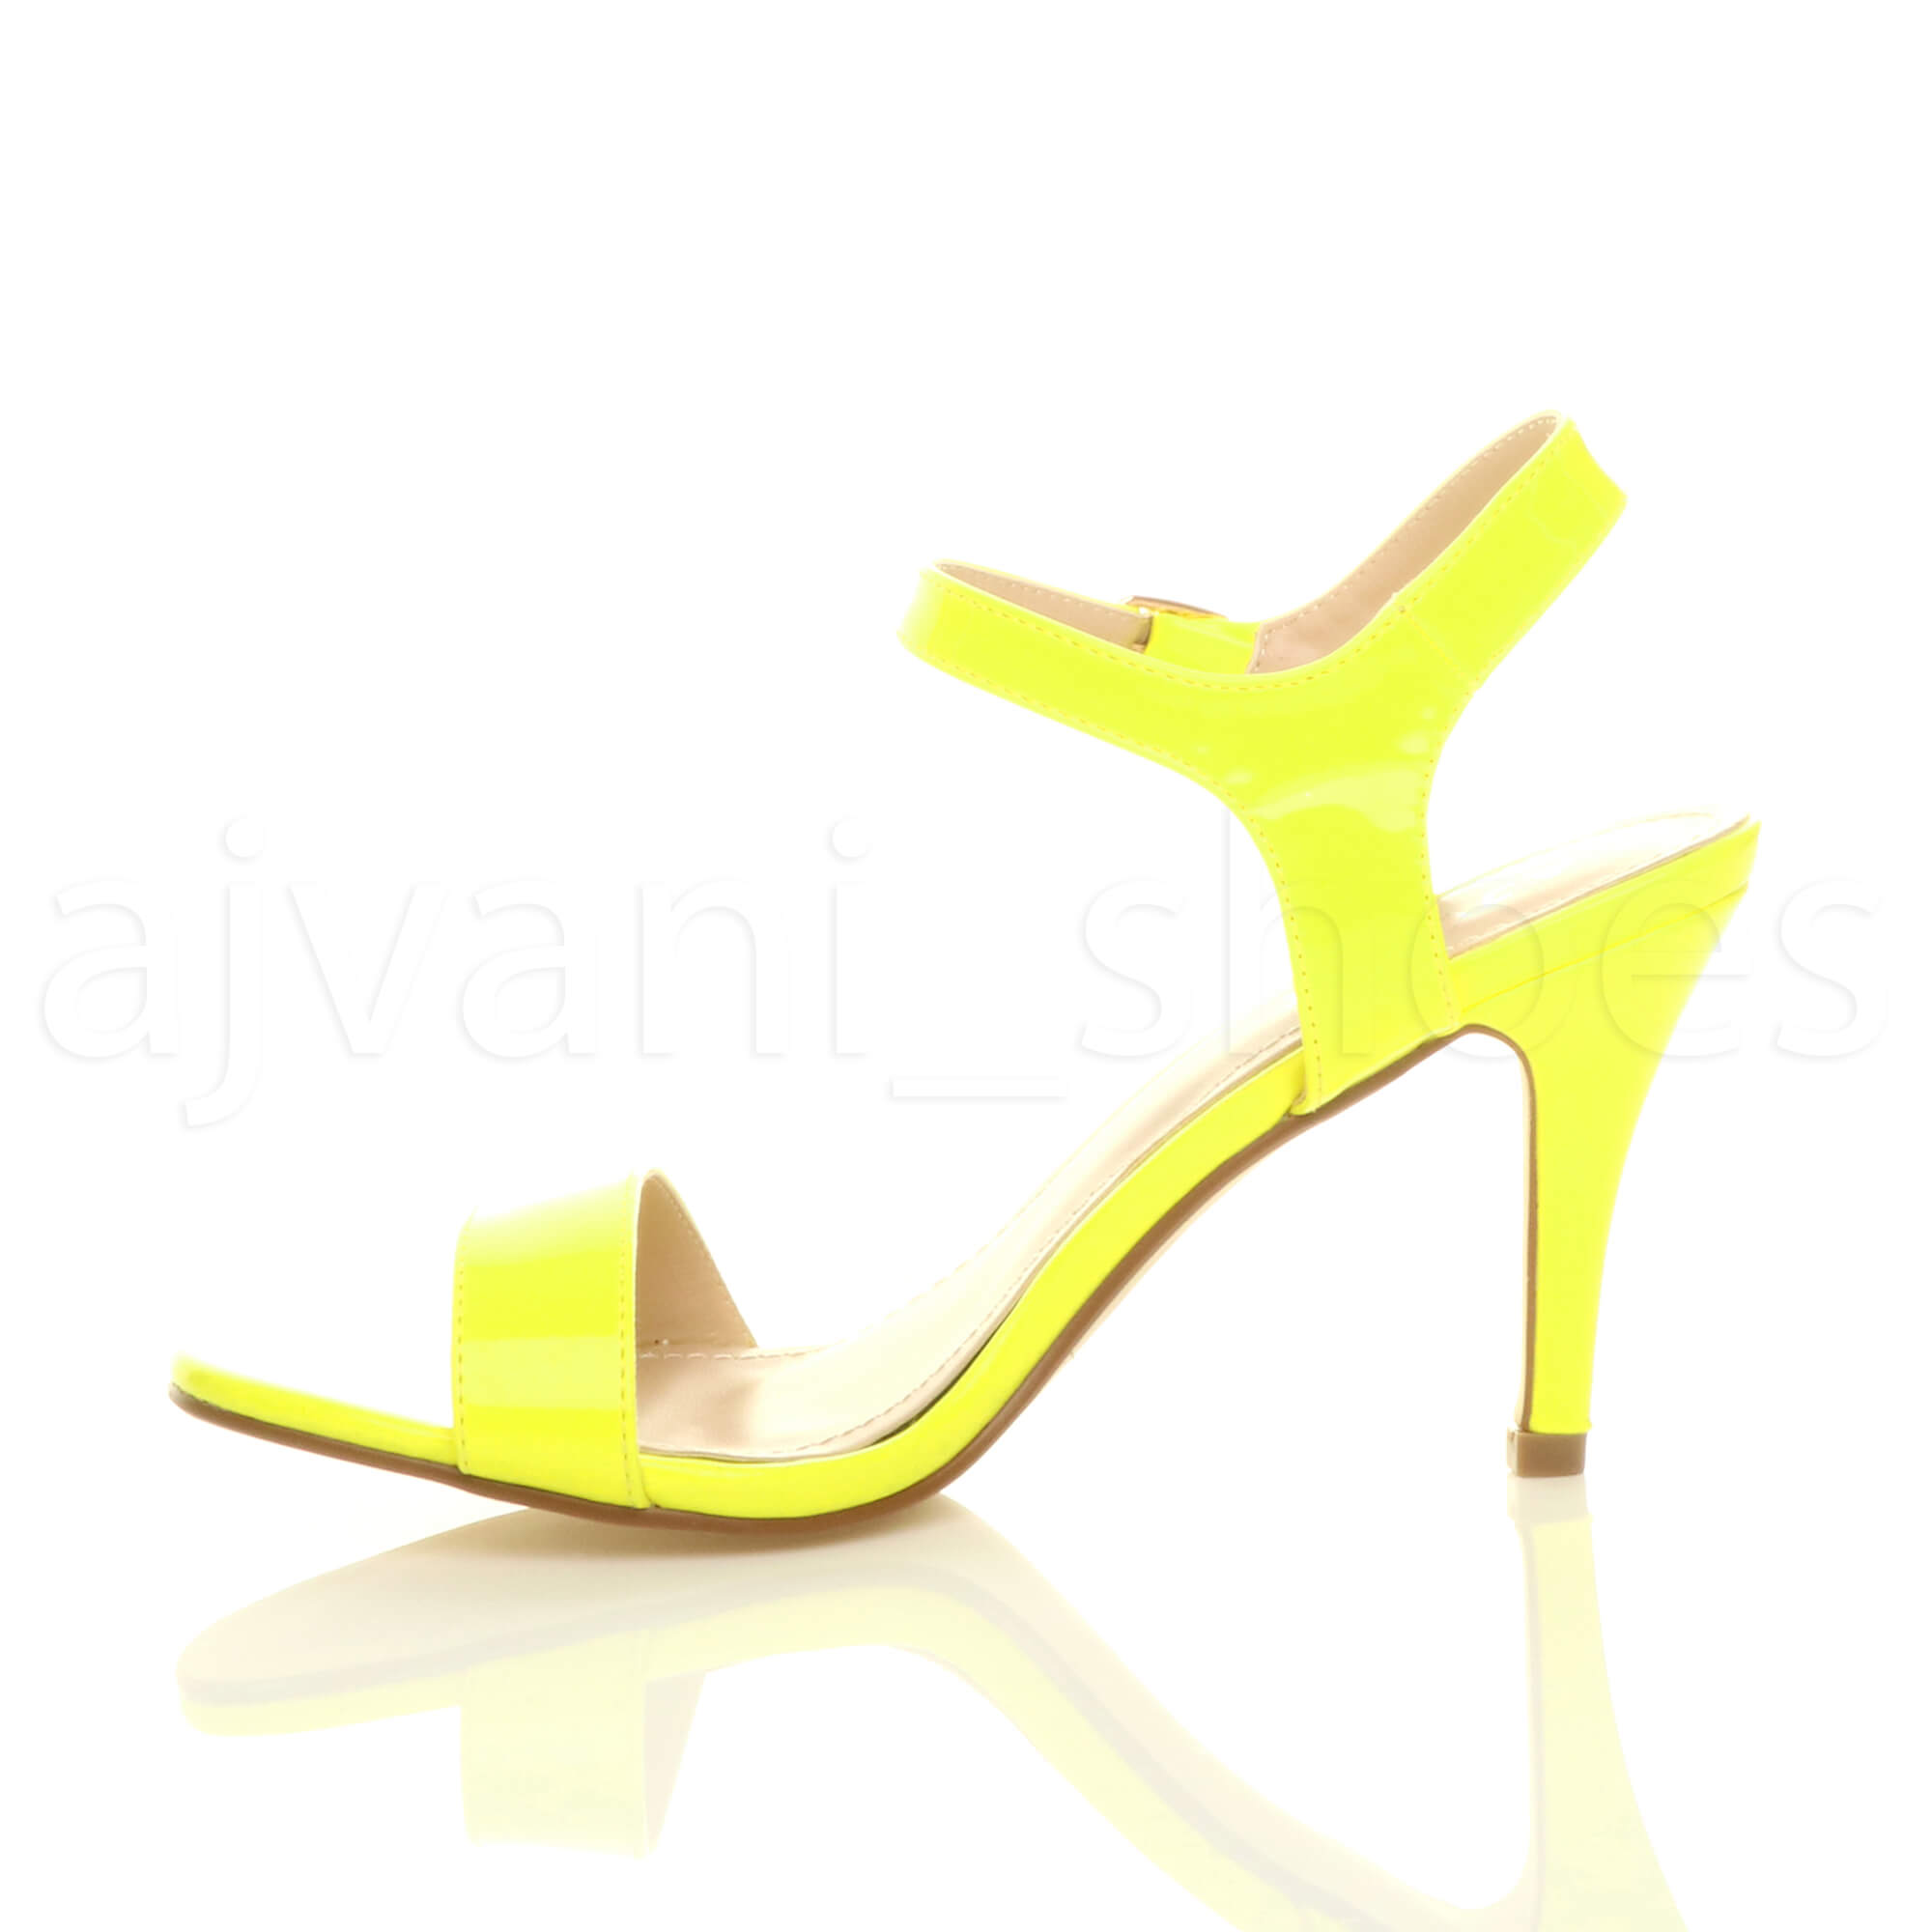 WOMENS-LADIES-HIGH-HEEL-BUCKLE-STRAPPY-BASIC-BARELY-THERE-SANDALS-SHOES-SIZE thumbnail 88